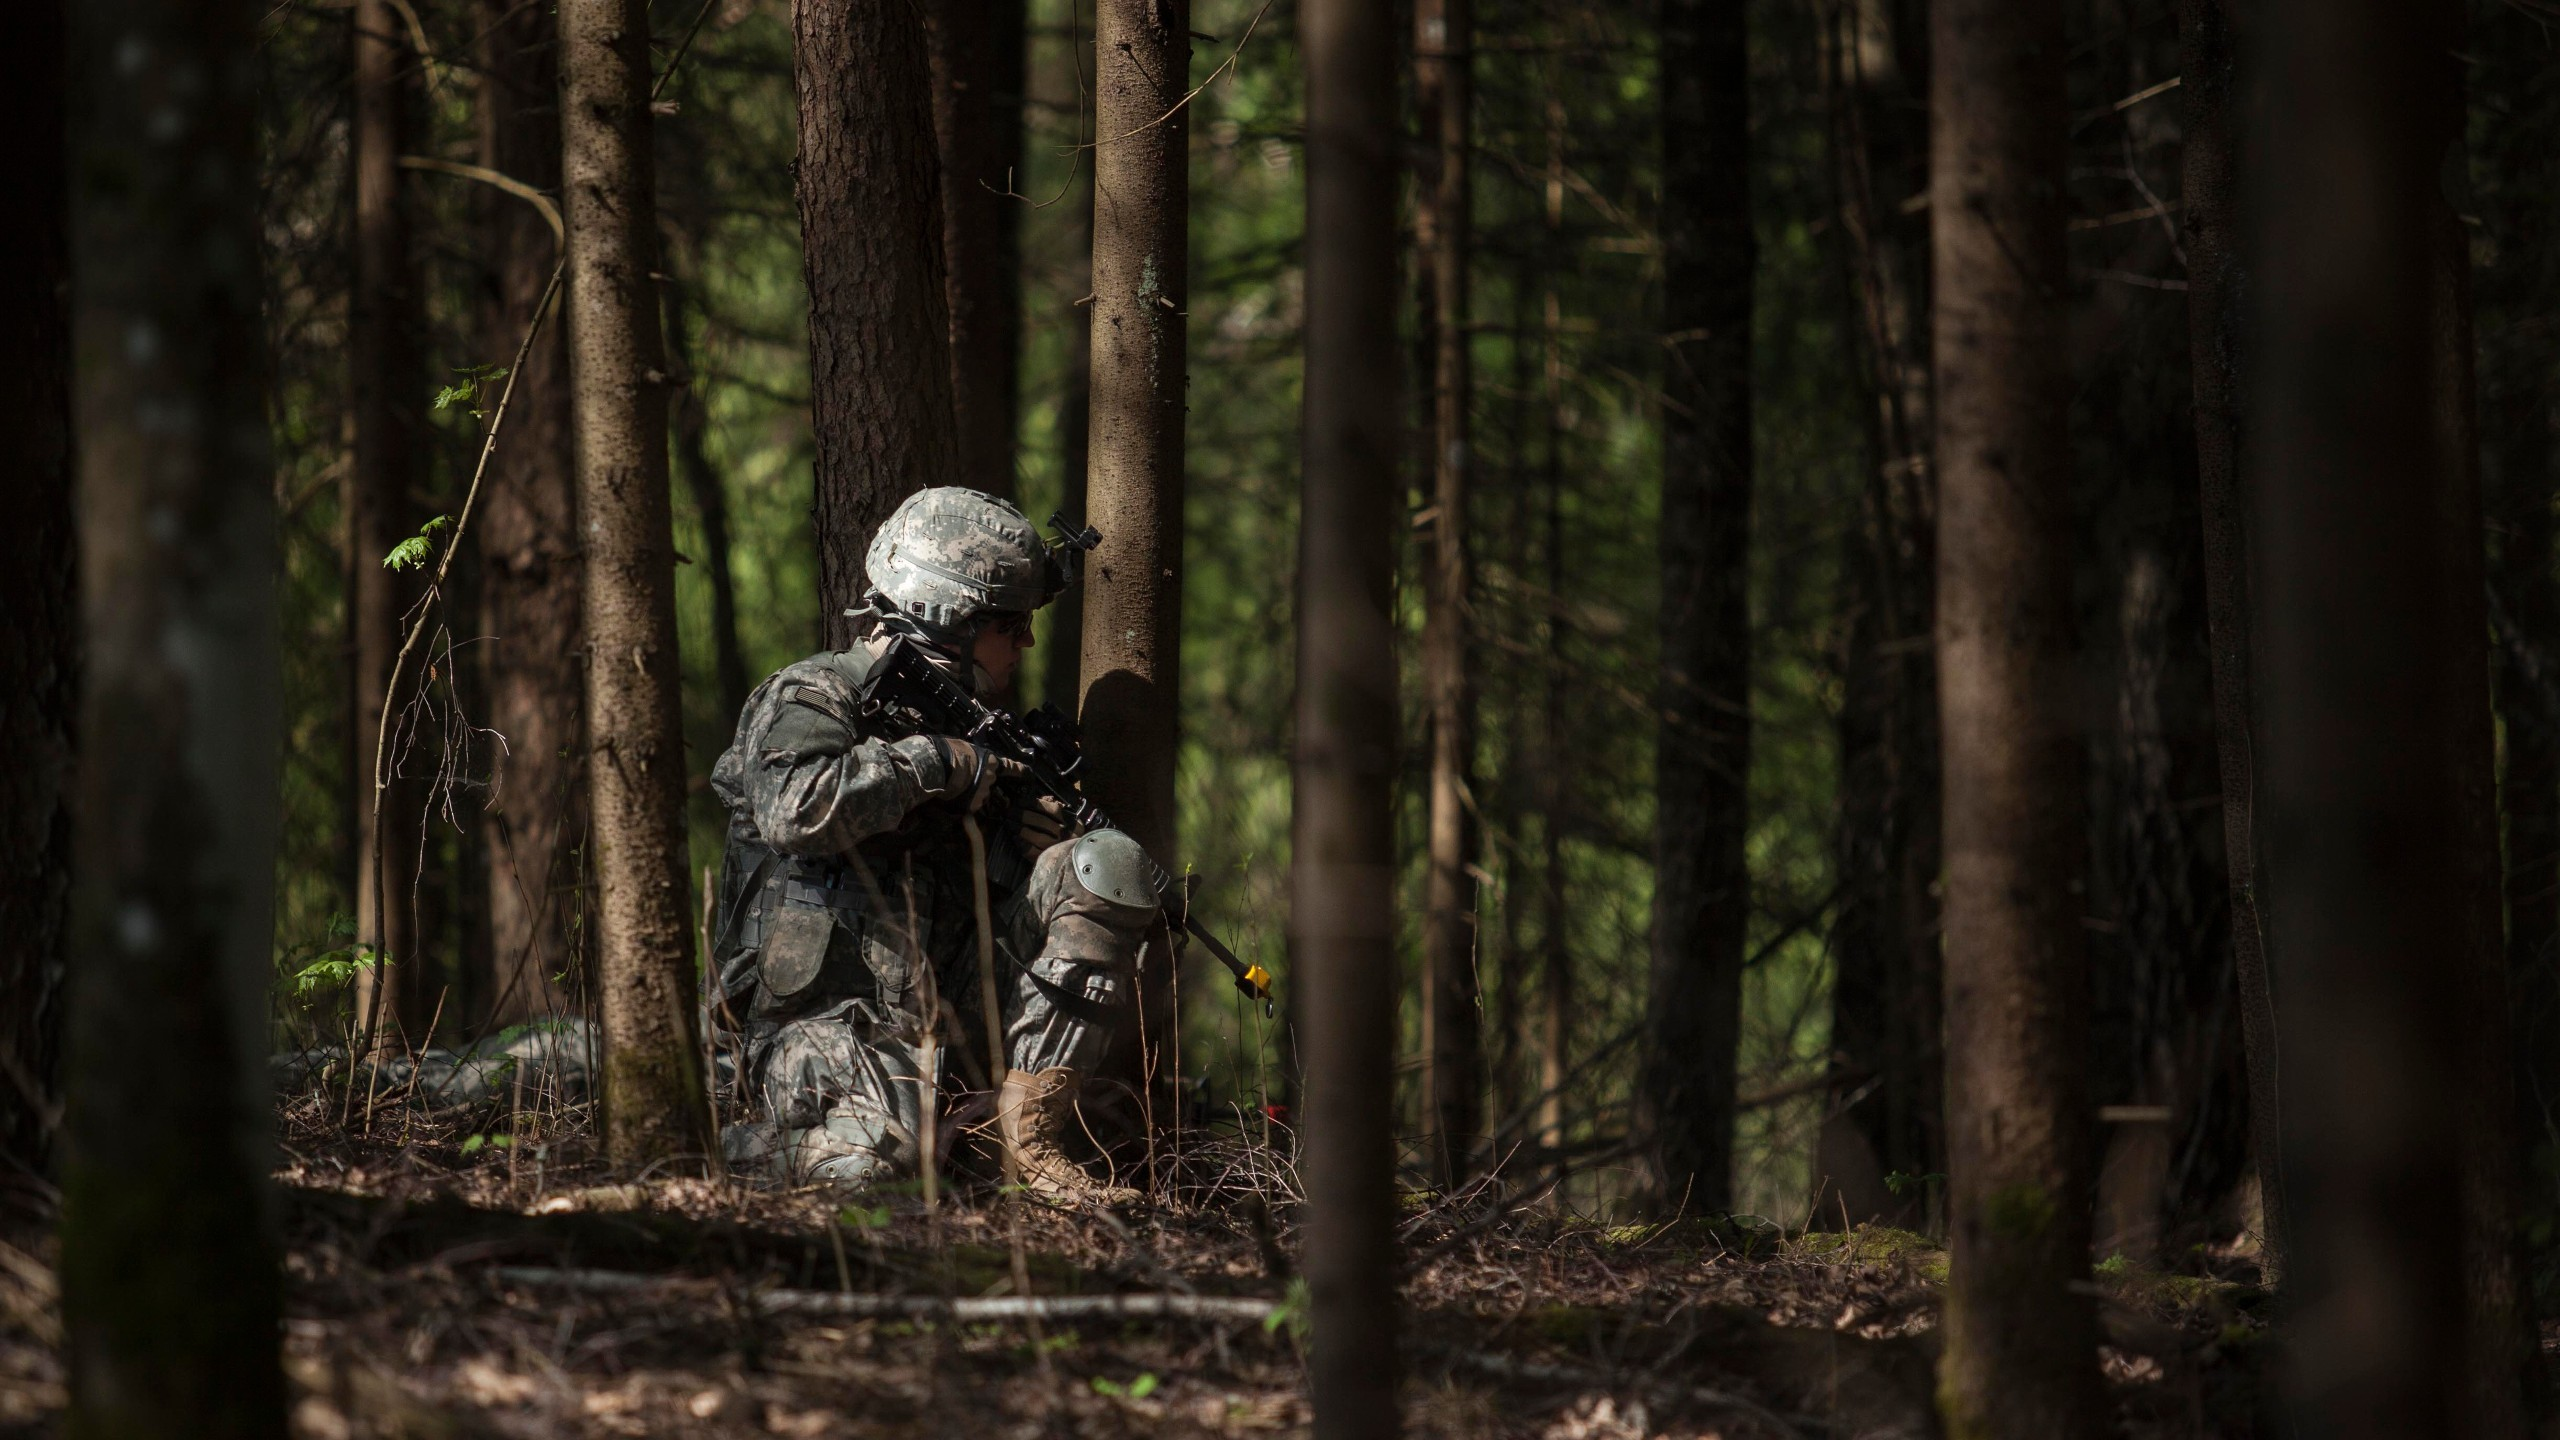 Res: 2560x1440, military, Soldier, Blank firing Adapter, United States Army, Forest  Wallpapers HD / Desktop and Mobile Backgrounds